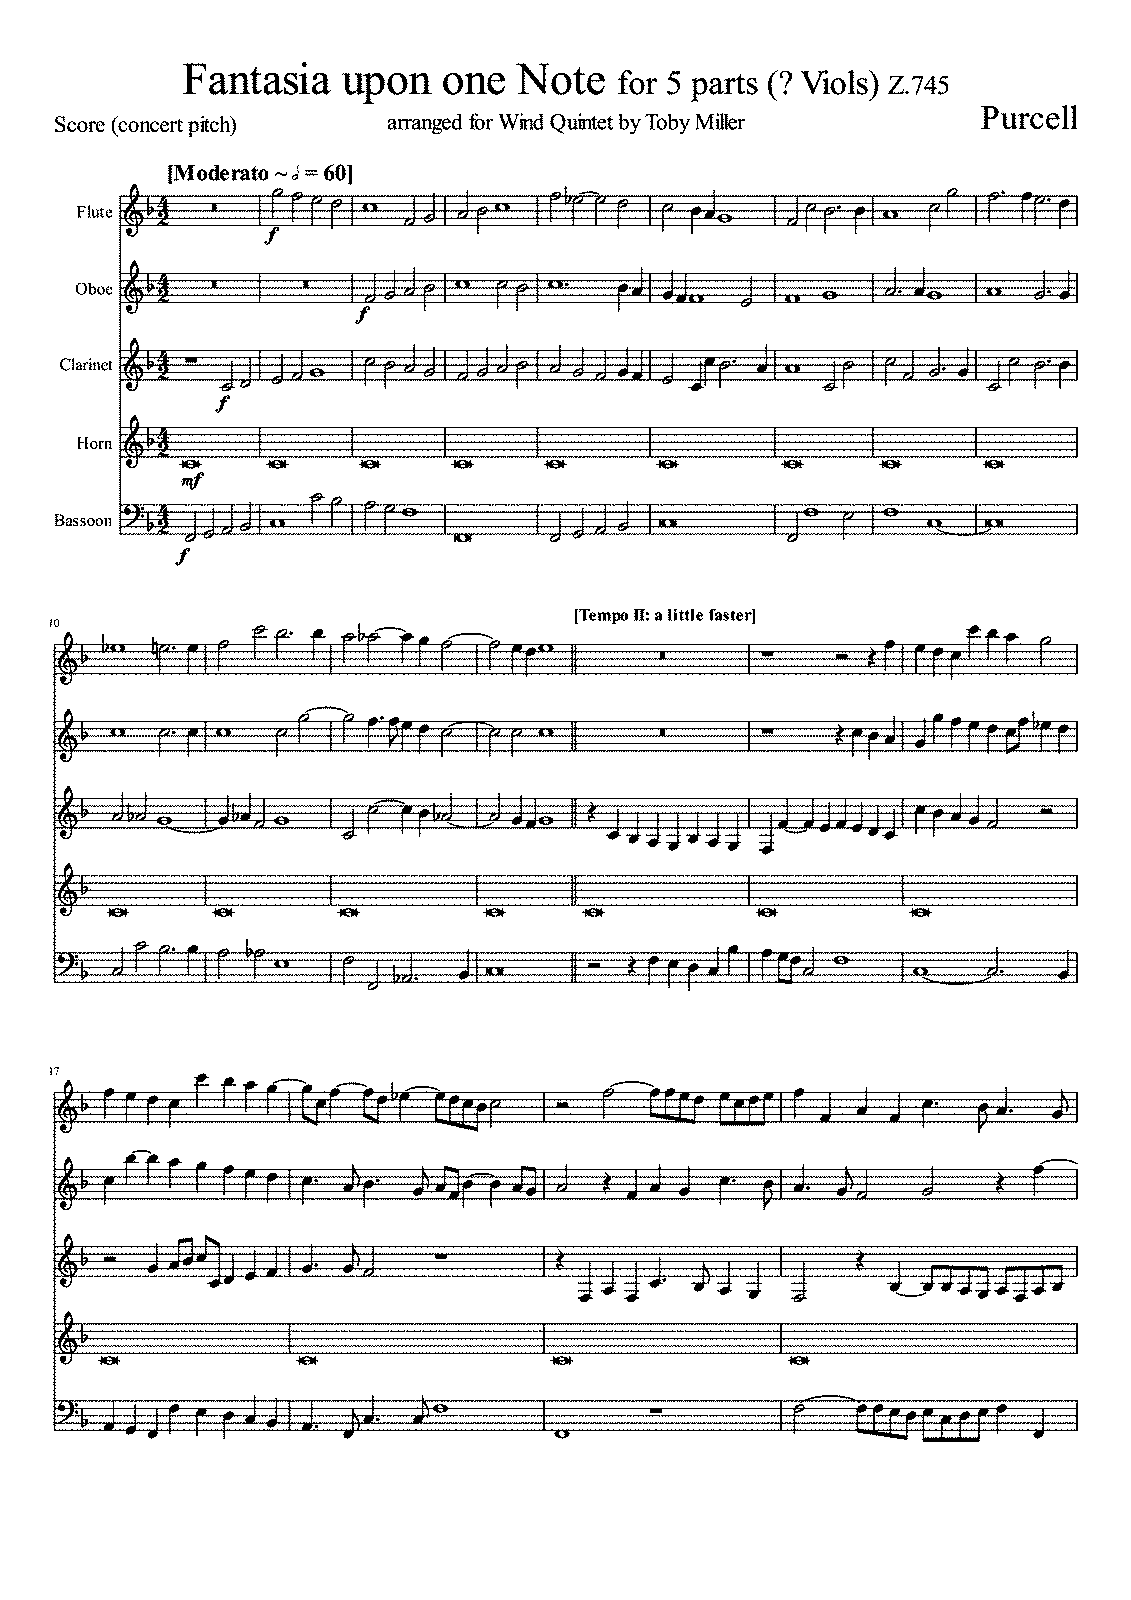 PMLP566809-Fantasia about one Note wind score and notes.pdf